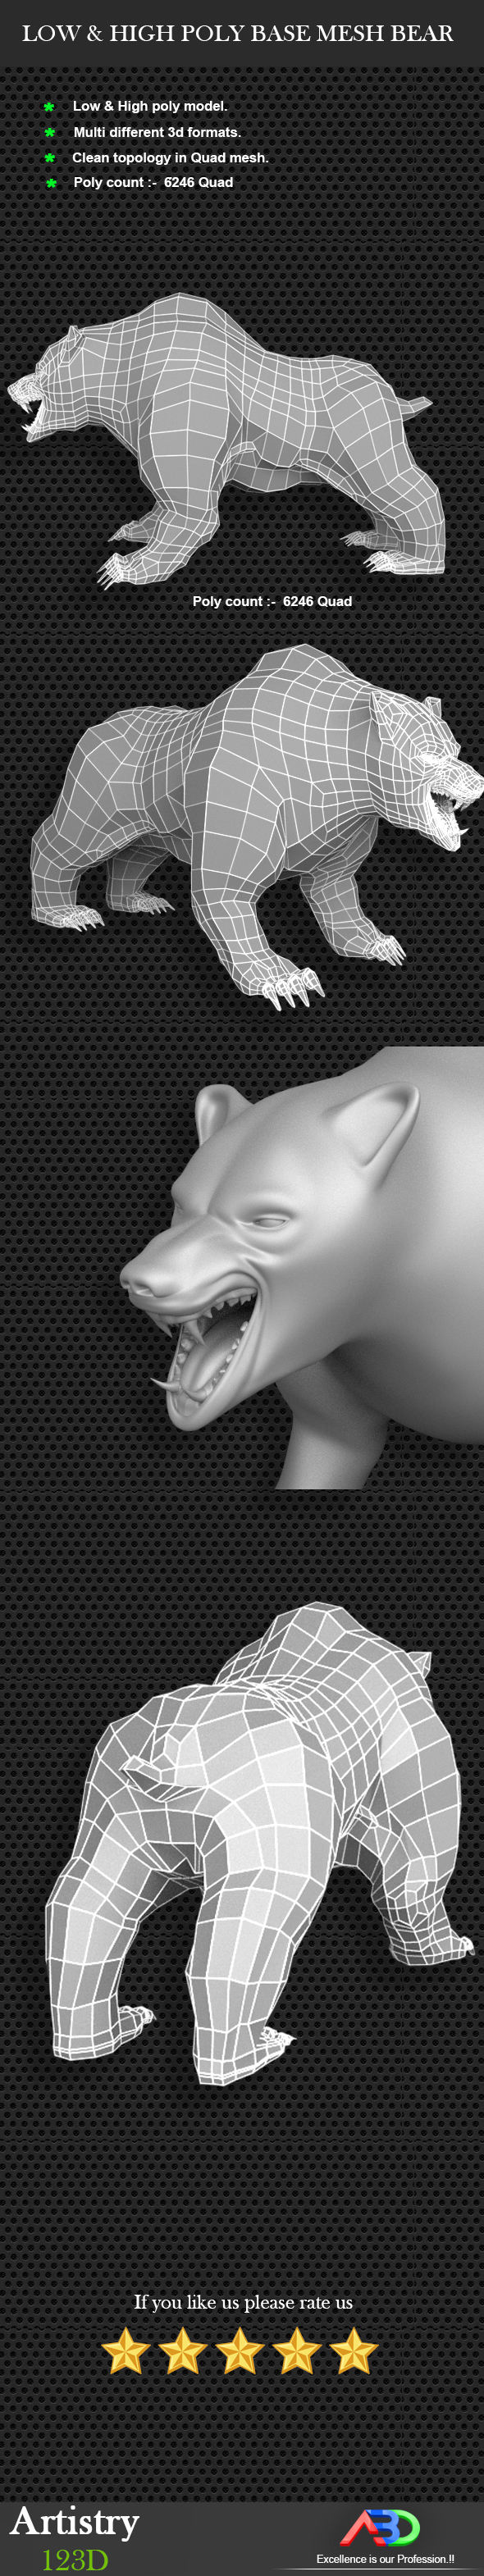 Bear Low & High Poly Base Mesh Bear - 3DOcean Item for Sale